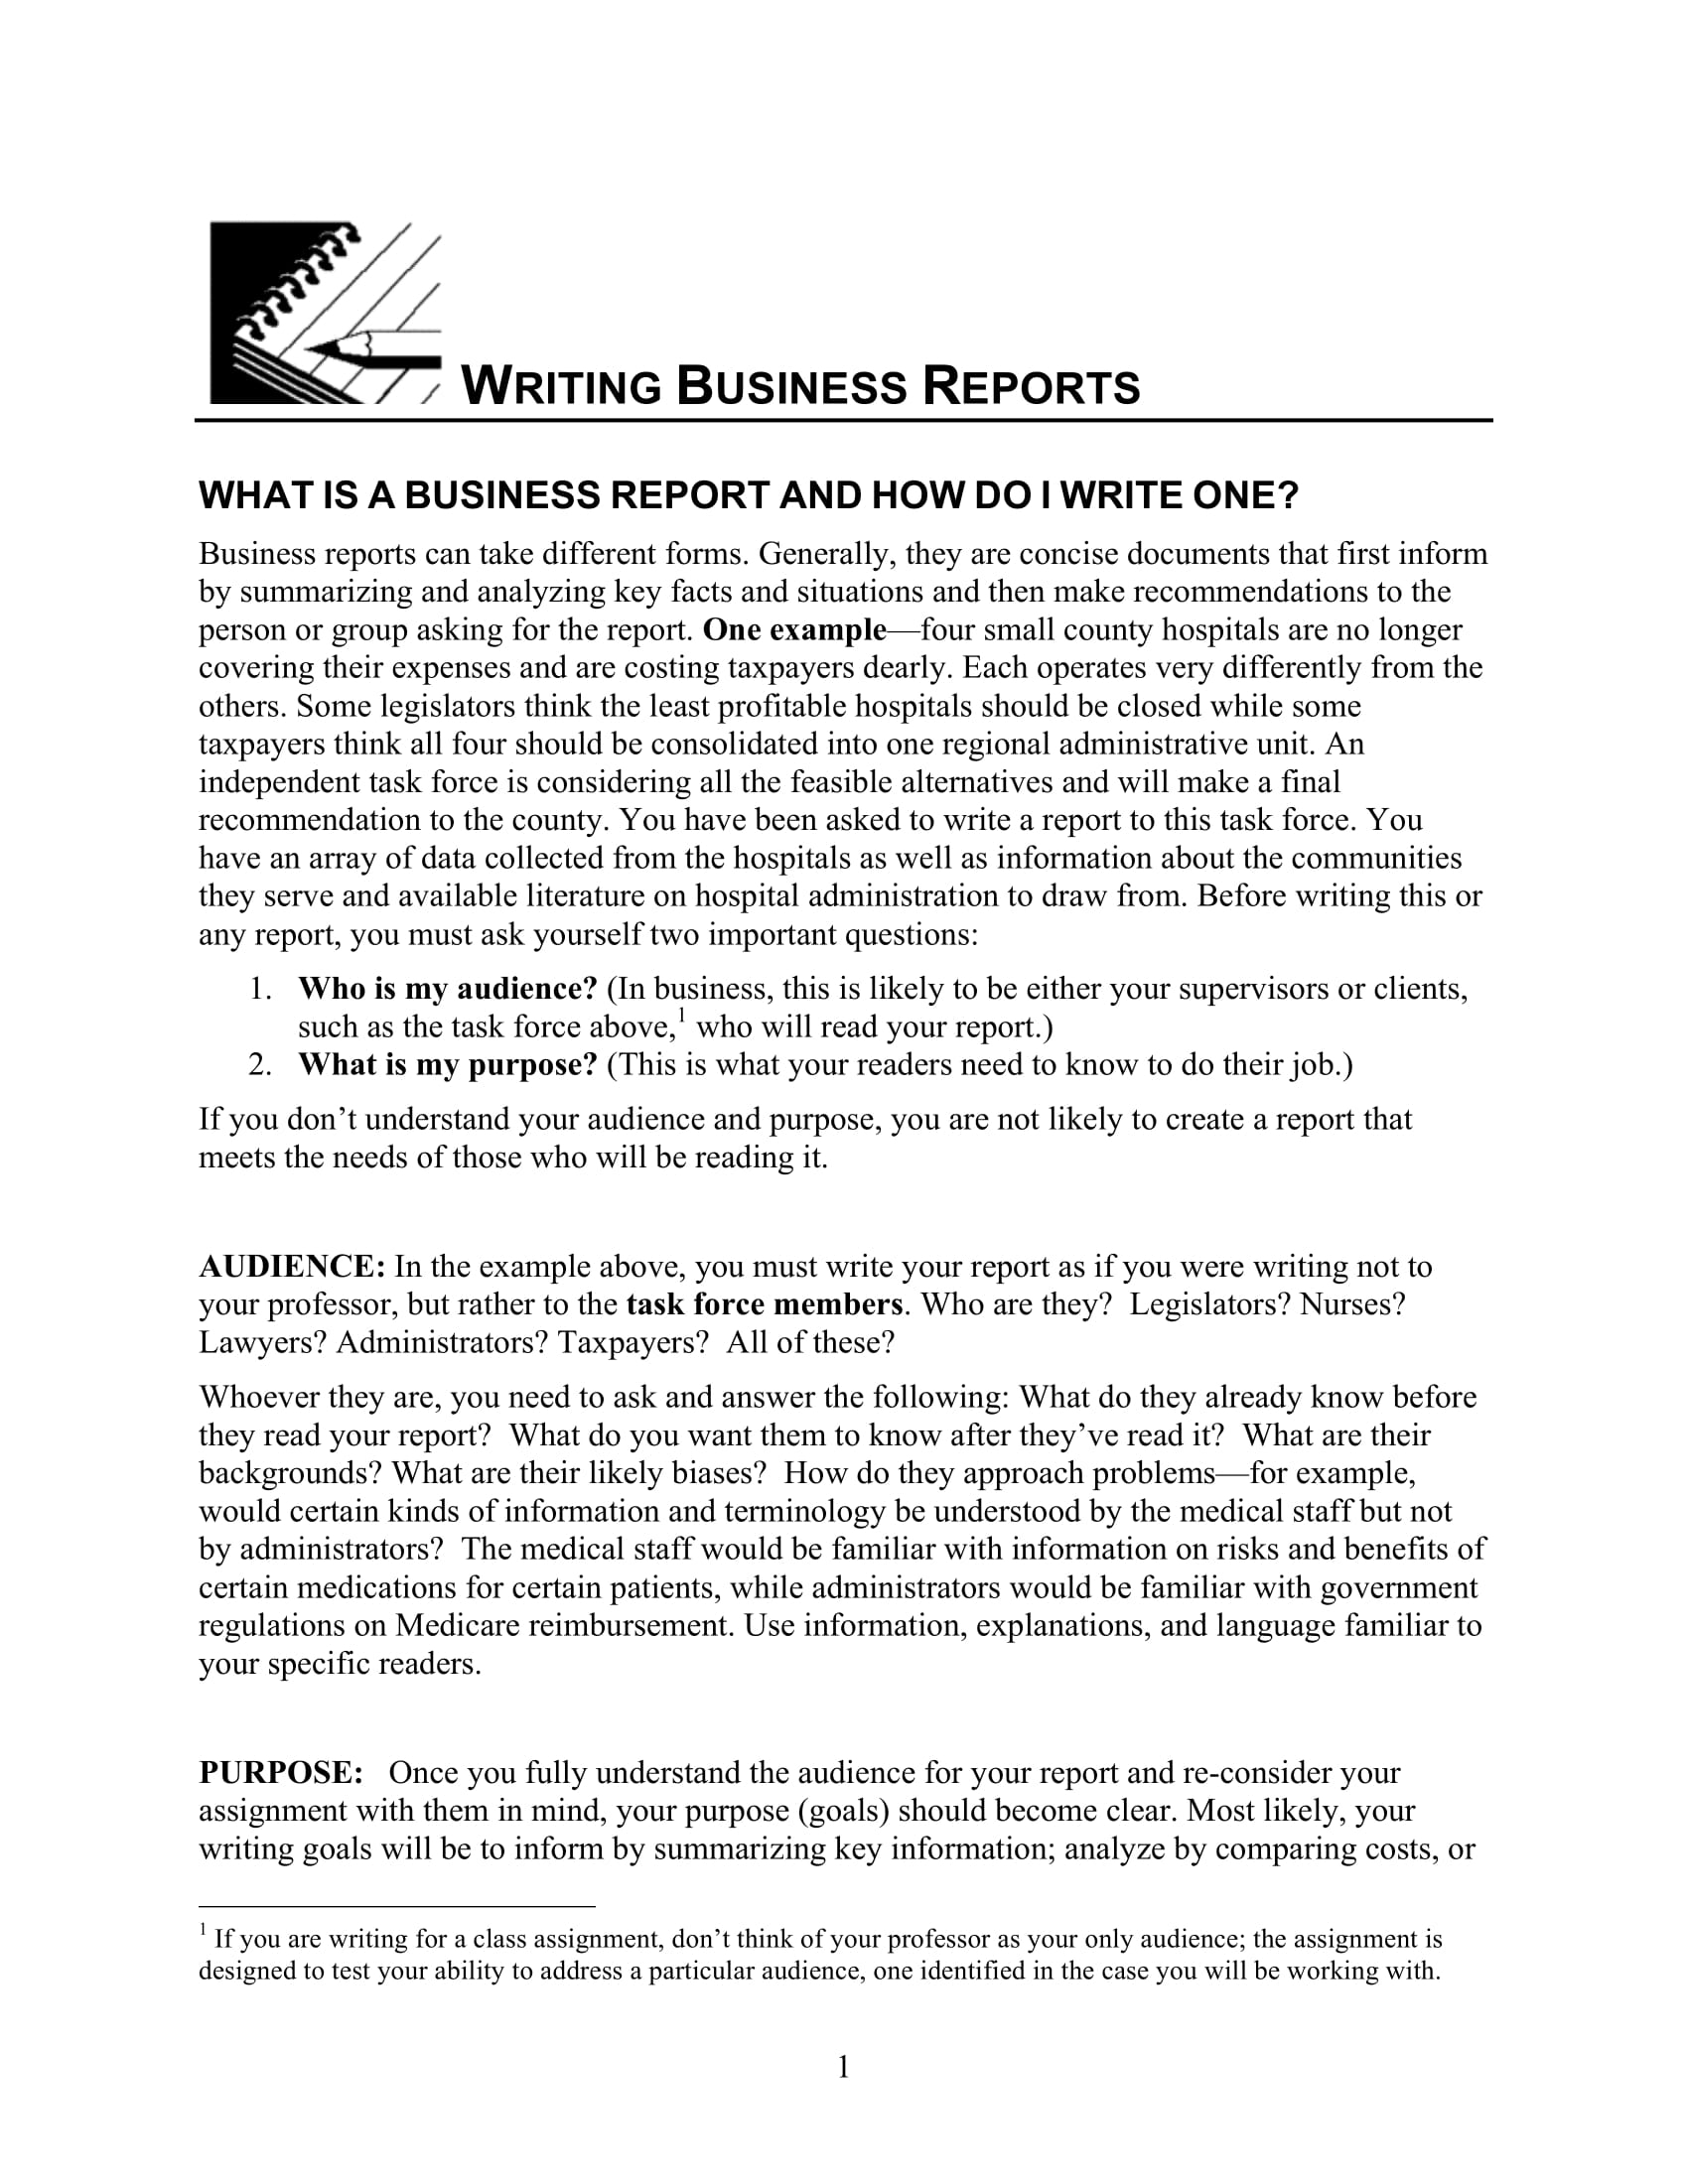 business report guidelines example 1